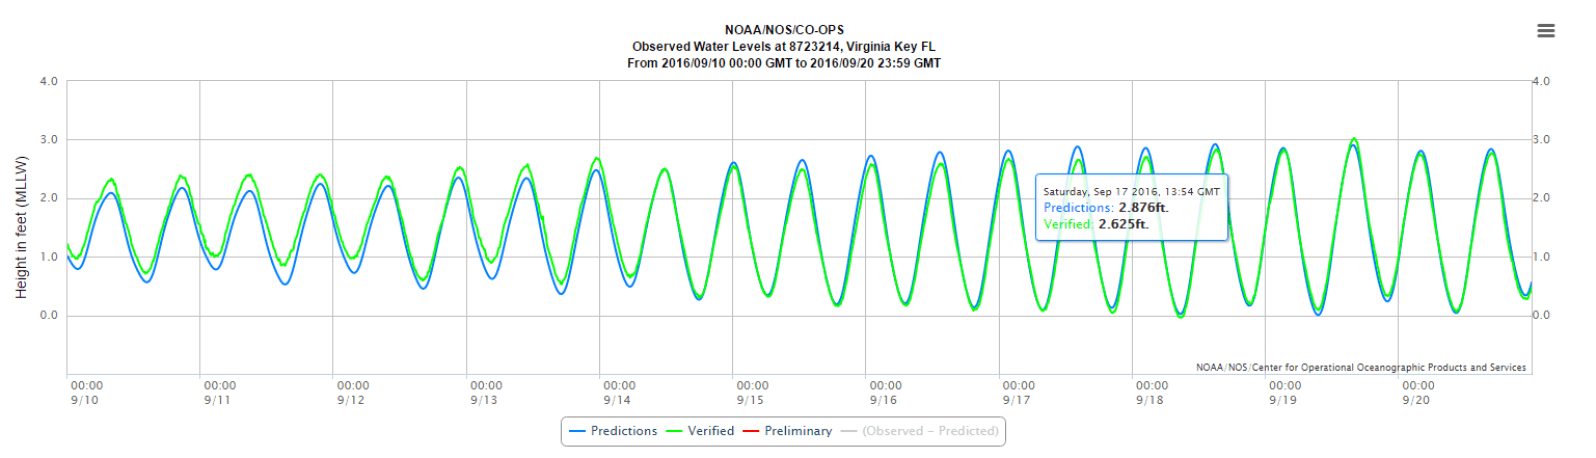 Predictions and actual tides from Sept. 10 to 20. (Courtesy of NOAA)